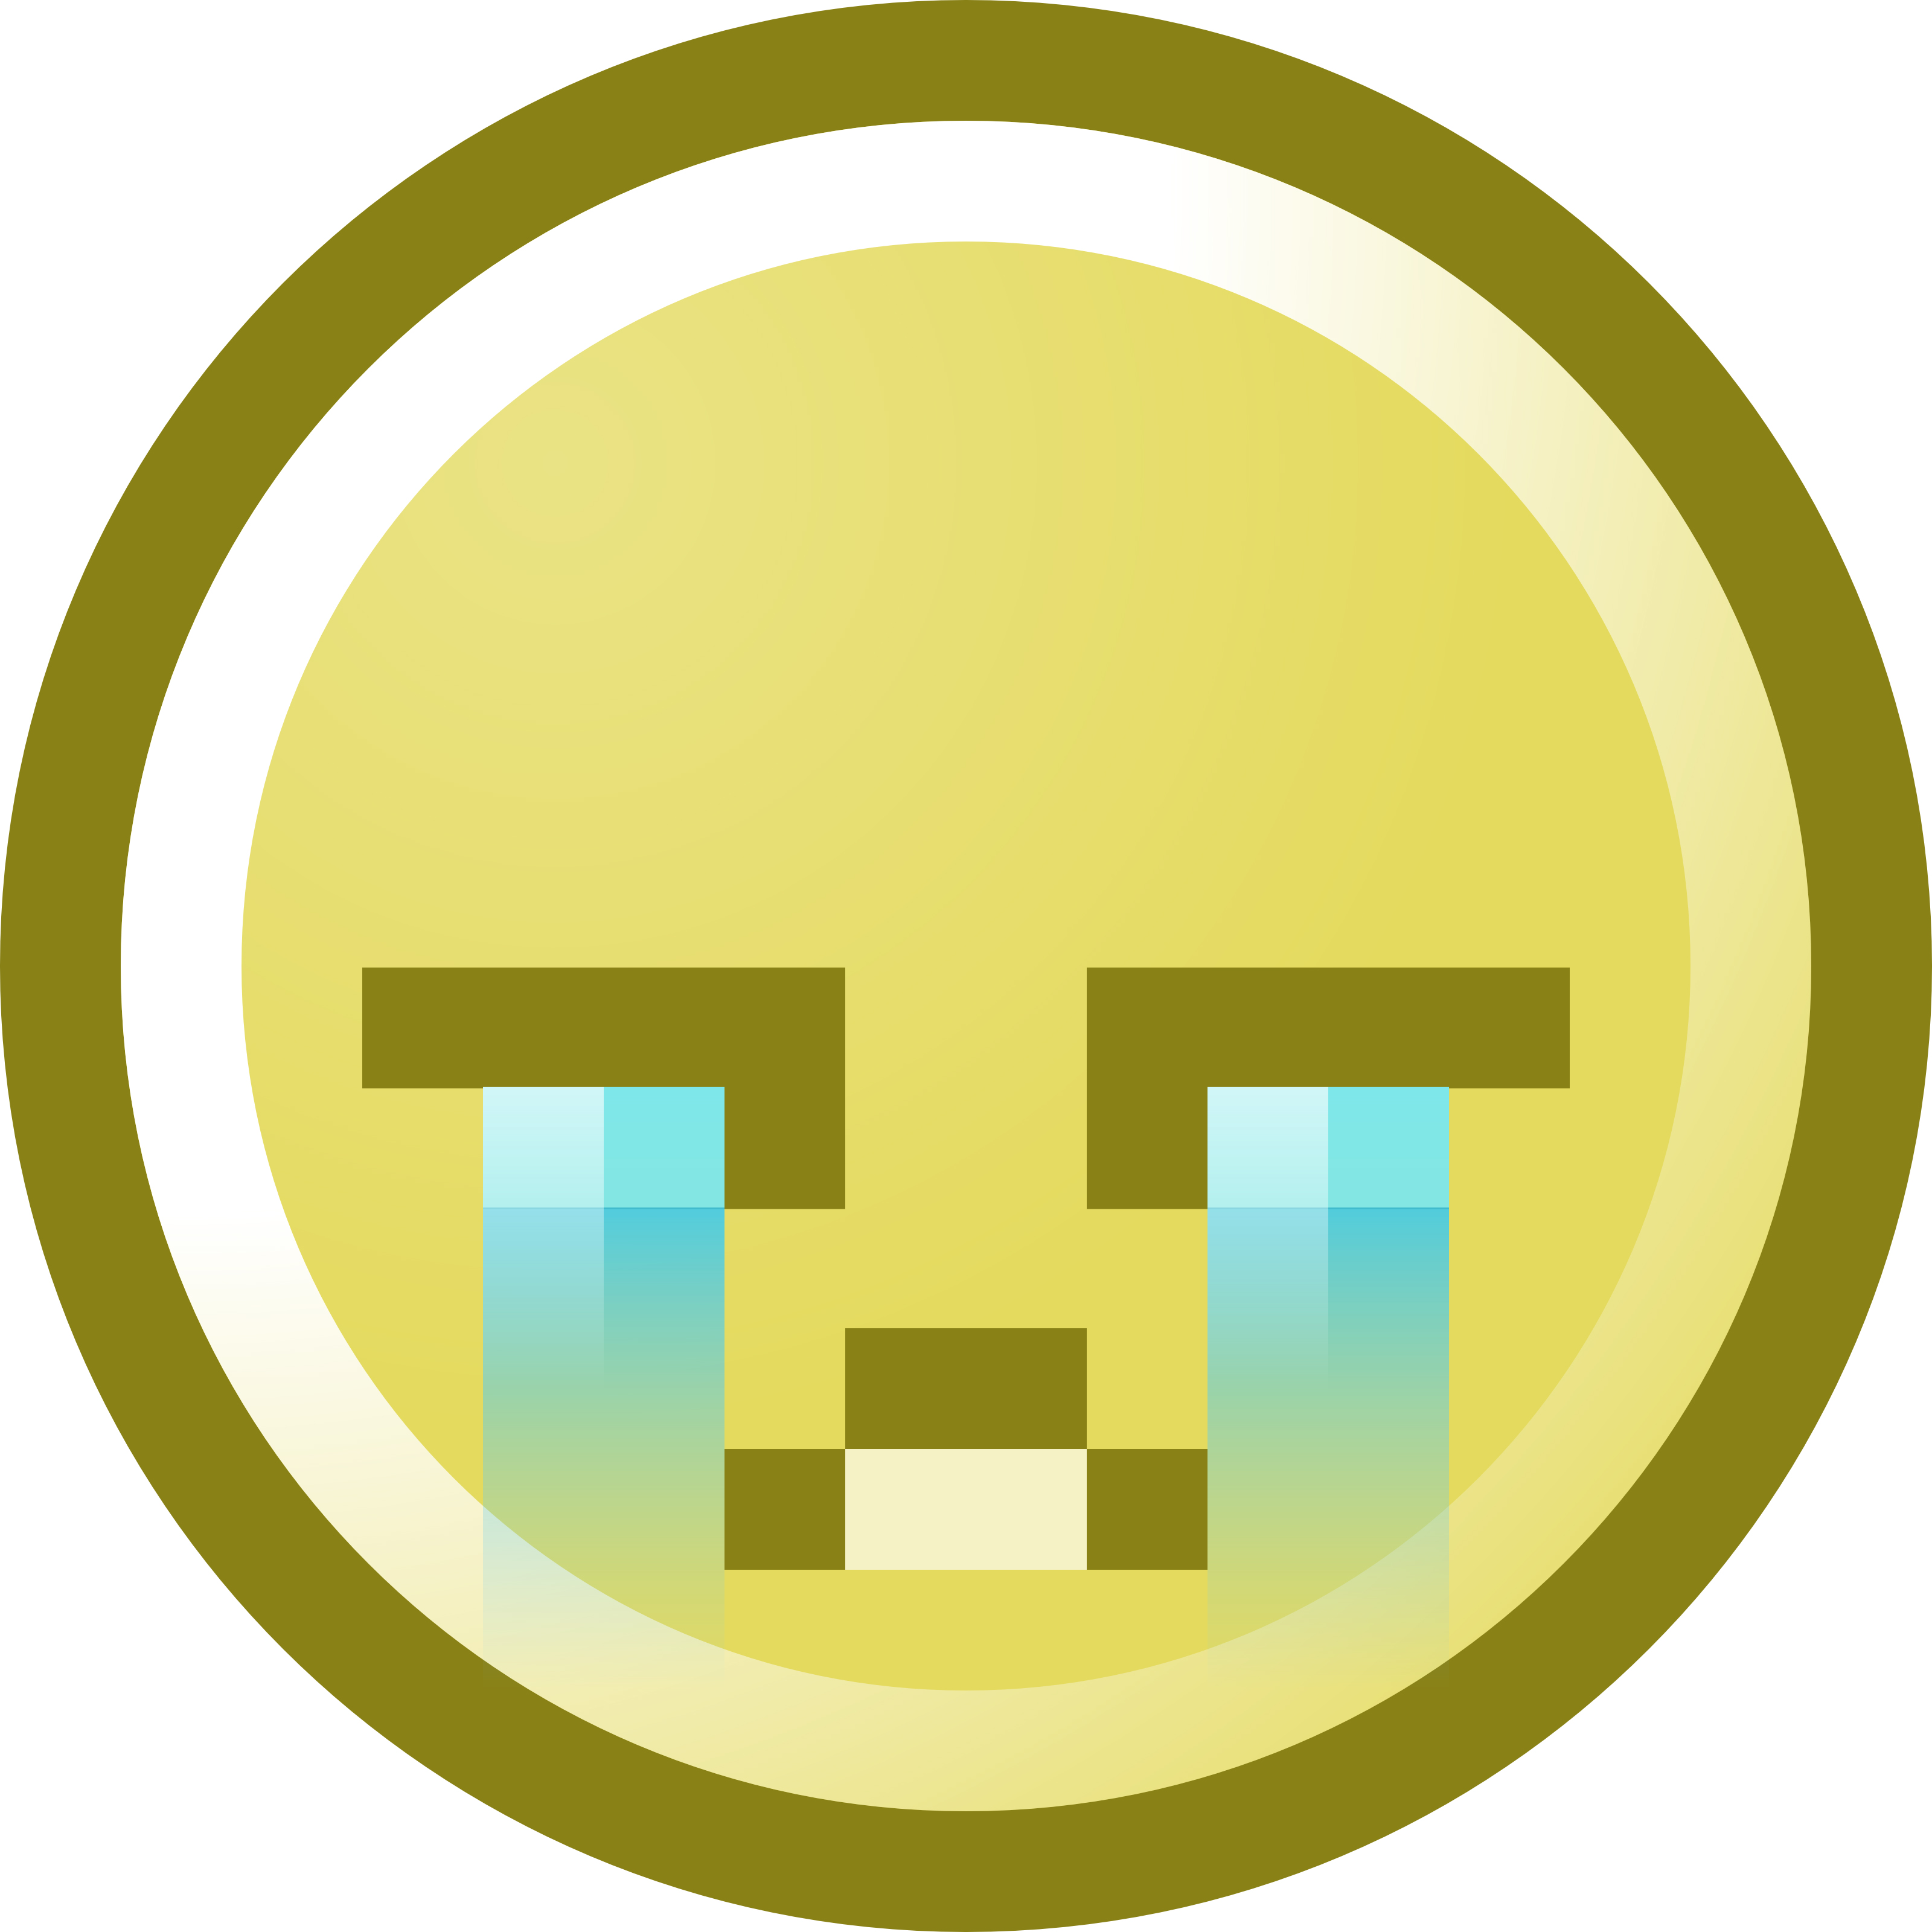 3200x3200 Crying Smiley Face Clip Art Illustration